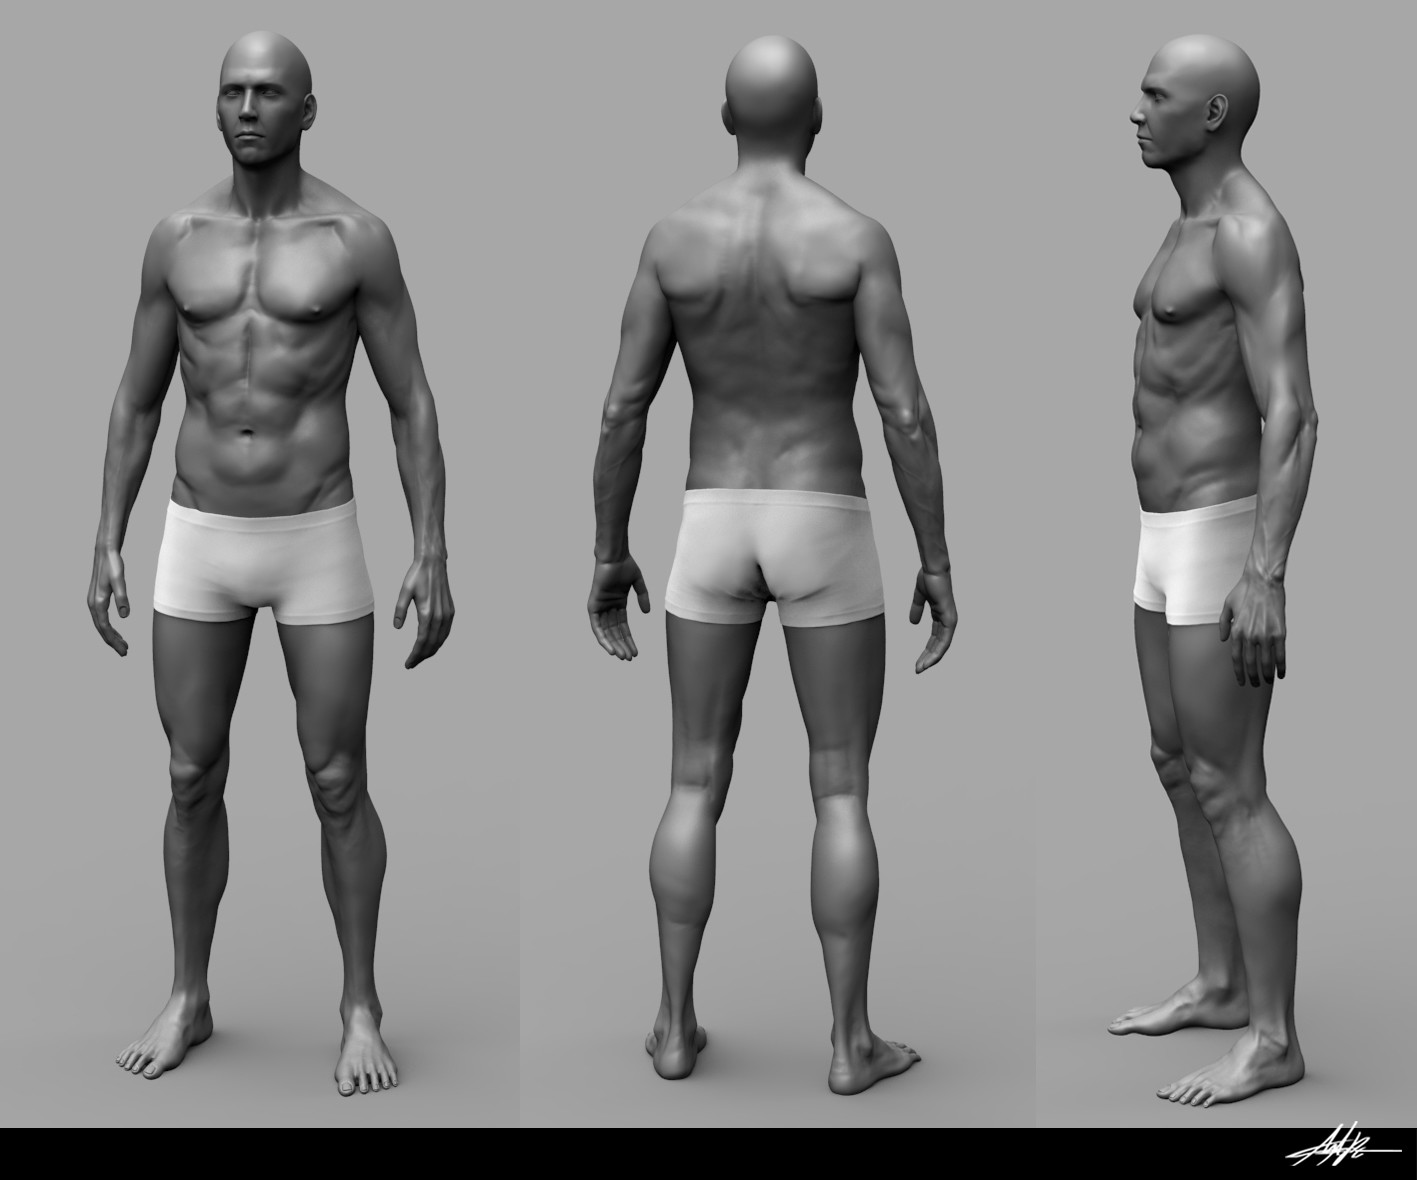 ArtStation - Male Anatomy, Miguel Angel Pescador